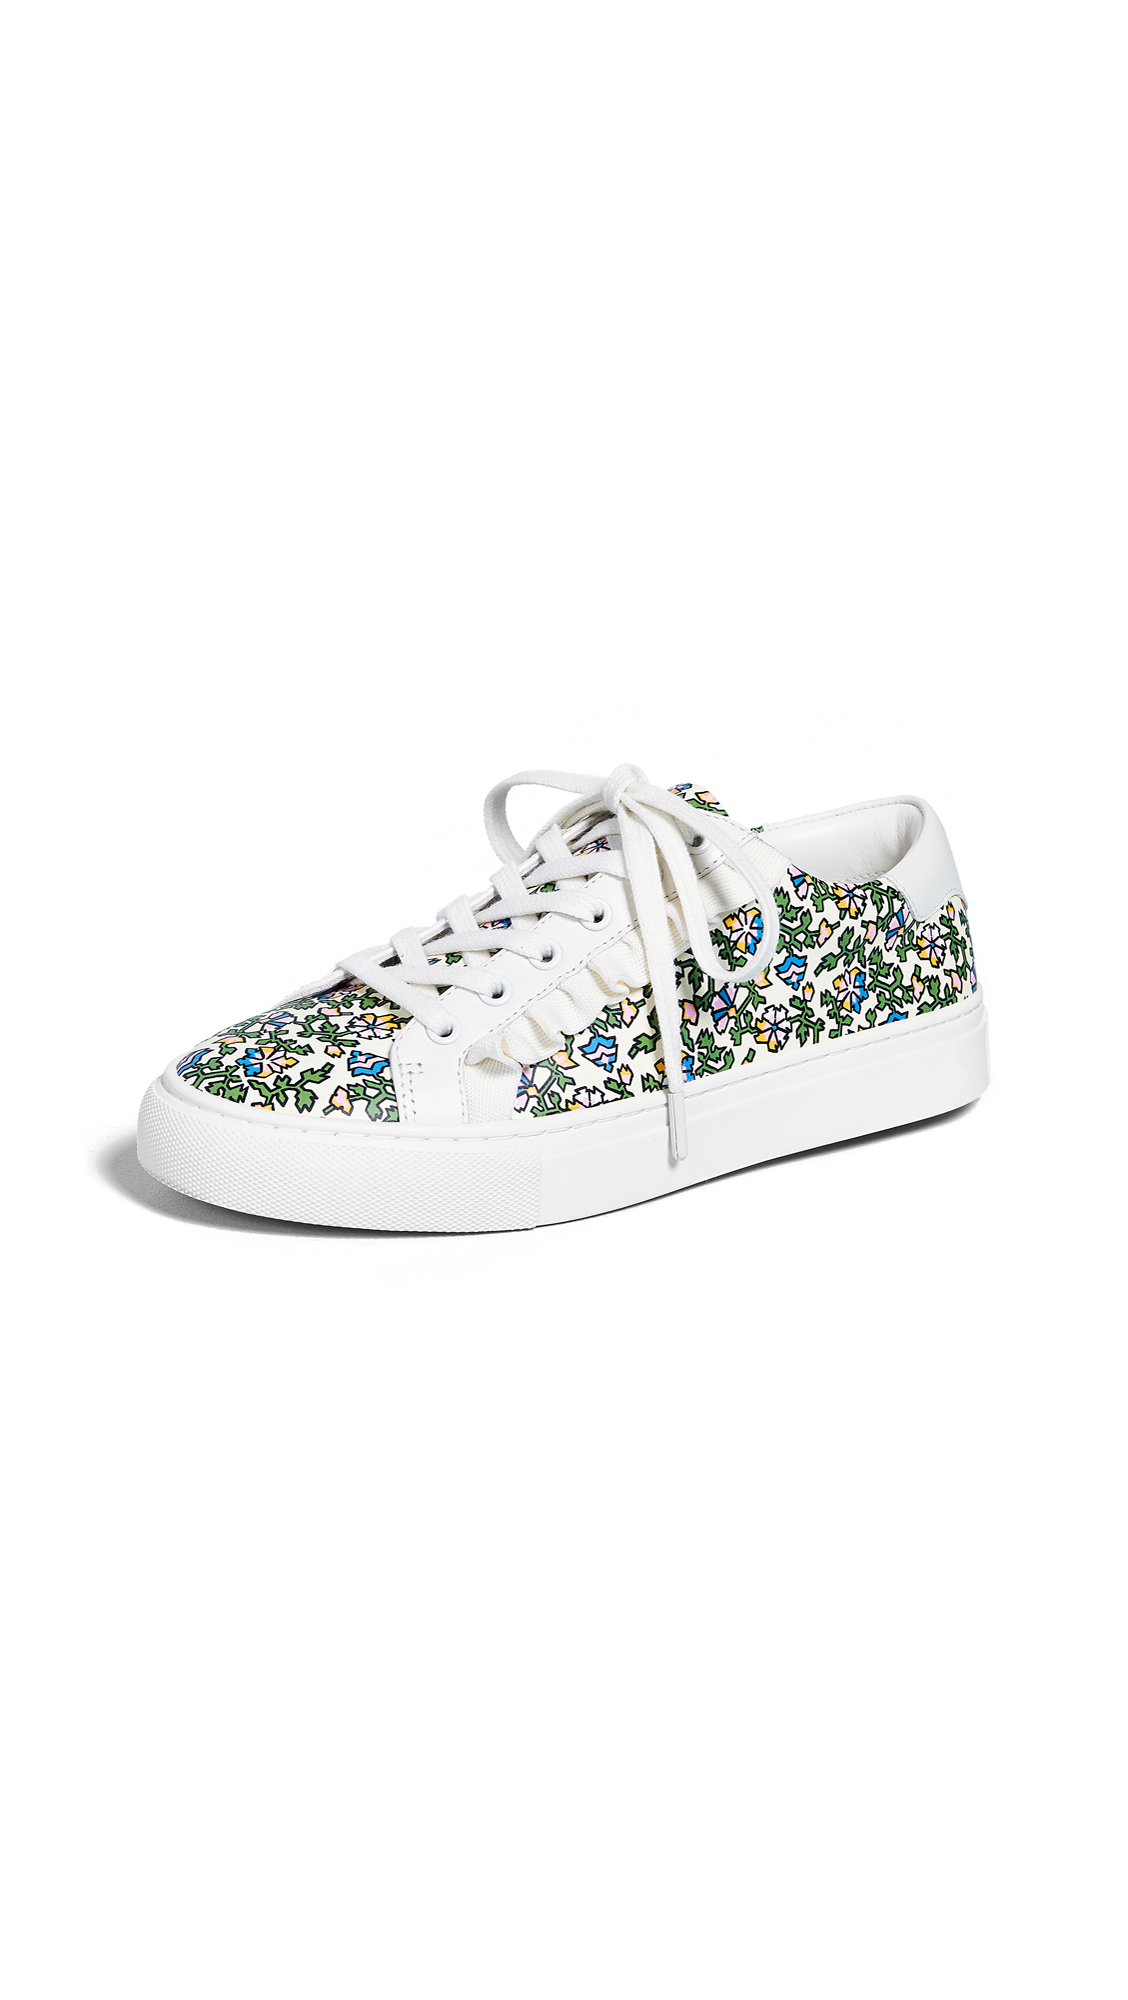 Tory Sport Ruffle Sneakers - Wild Pansy/New Ivory